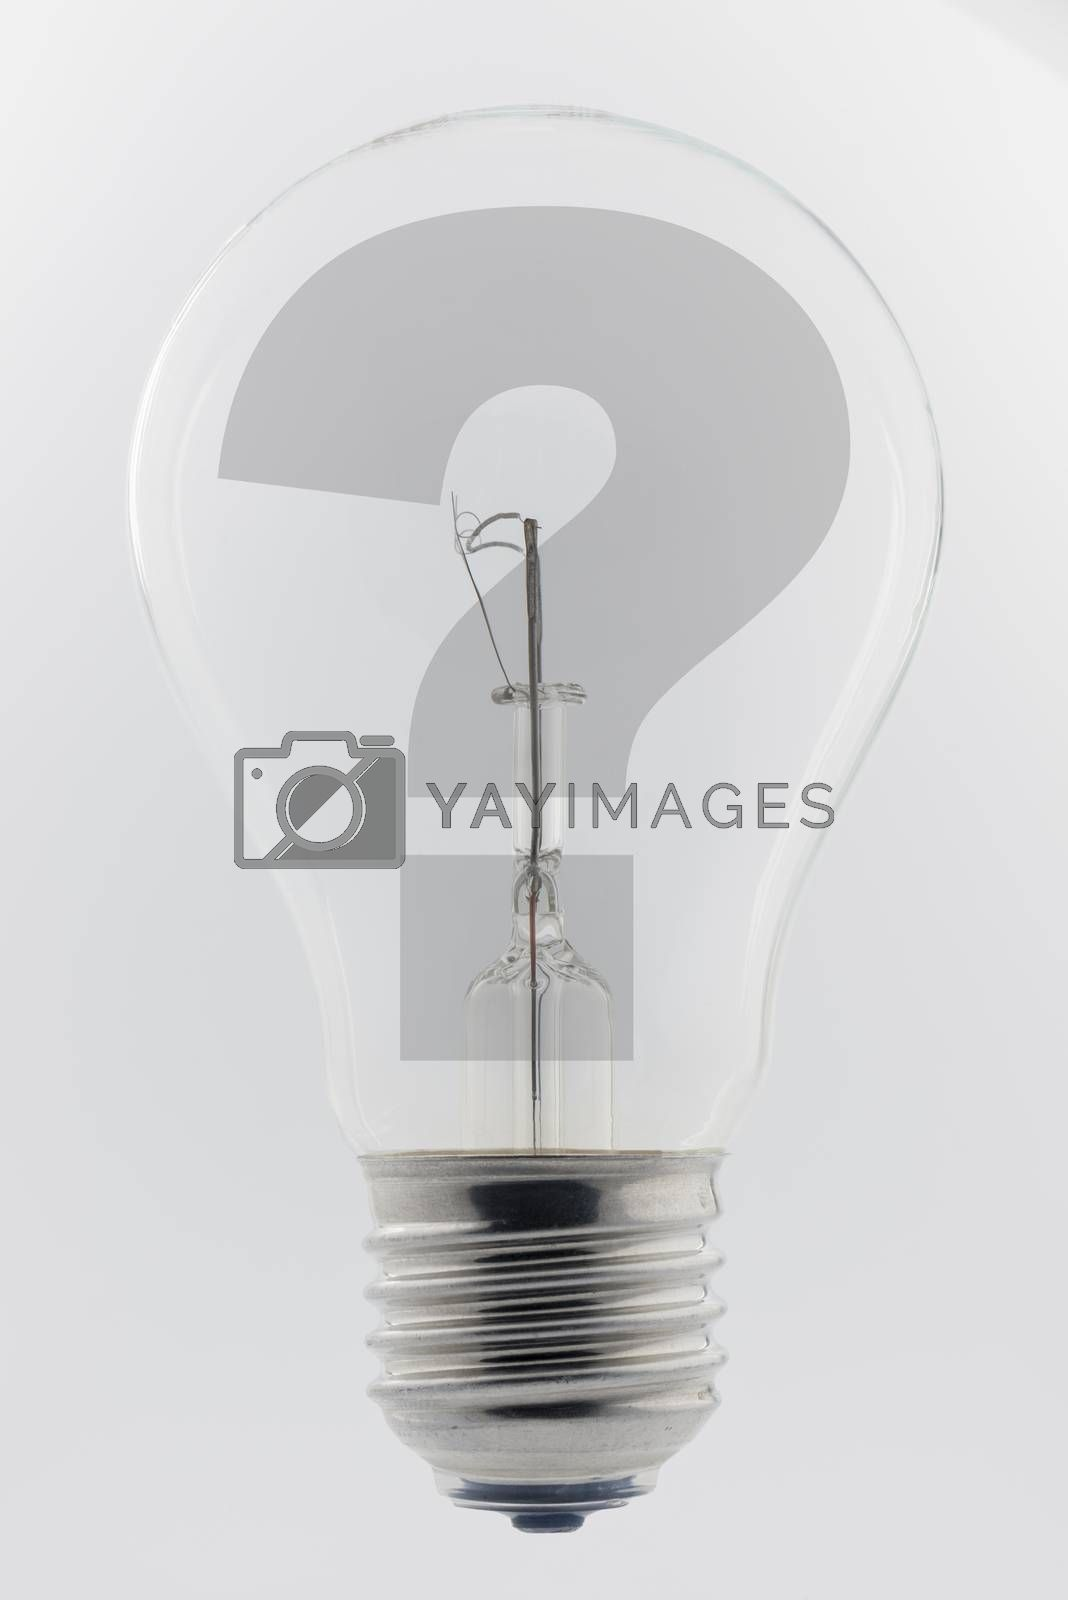 Photo of an old light bulb with a question mark